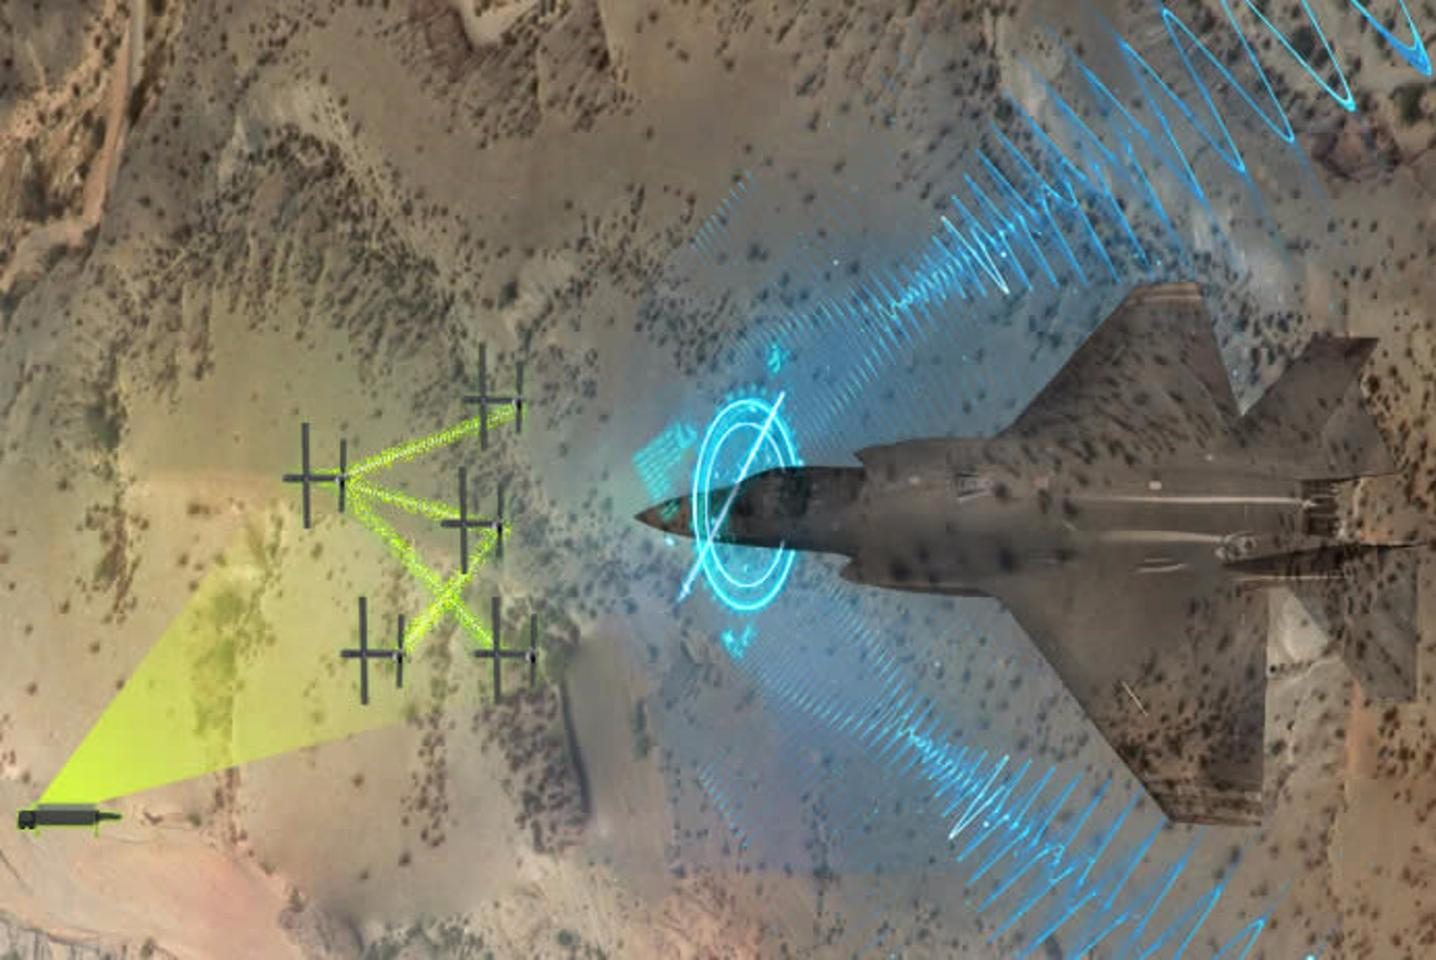 Raytheon will showcase disruptive technologies that are changing warfare at the 2017 Paris Air Show